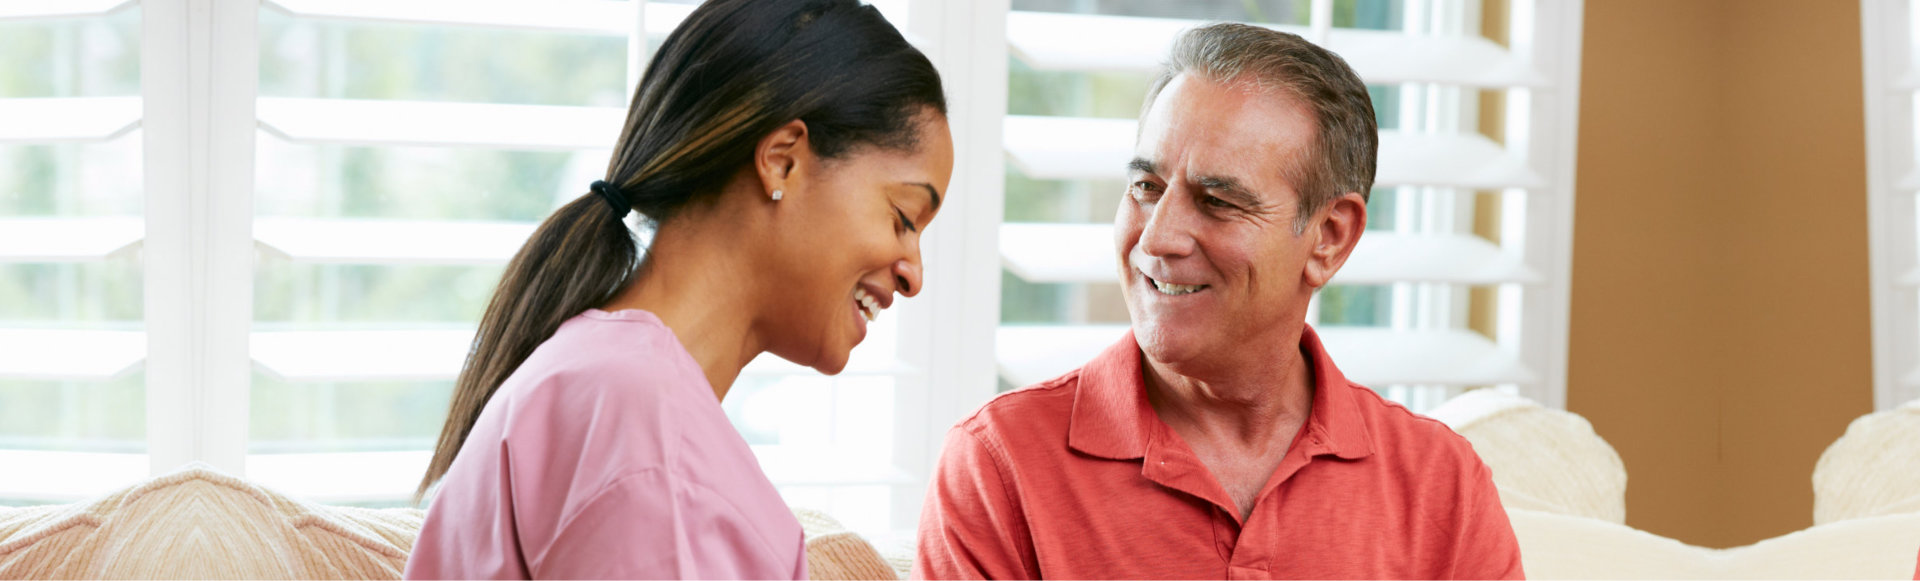 patient looking to his caregiver while smiling